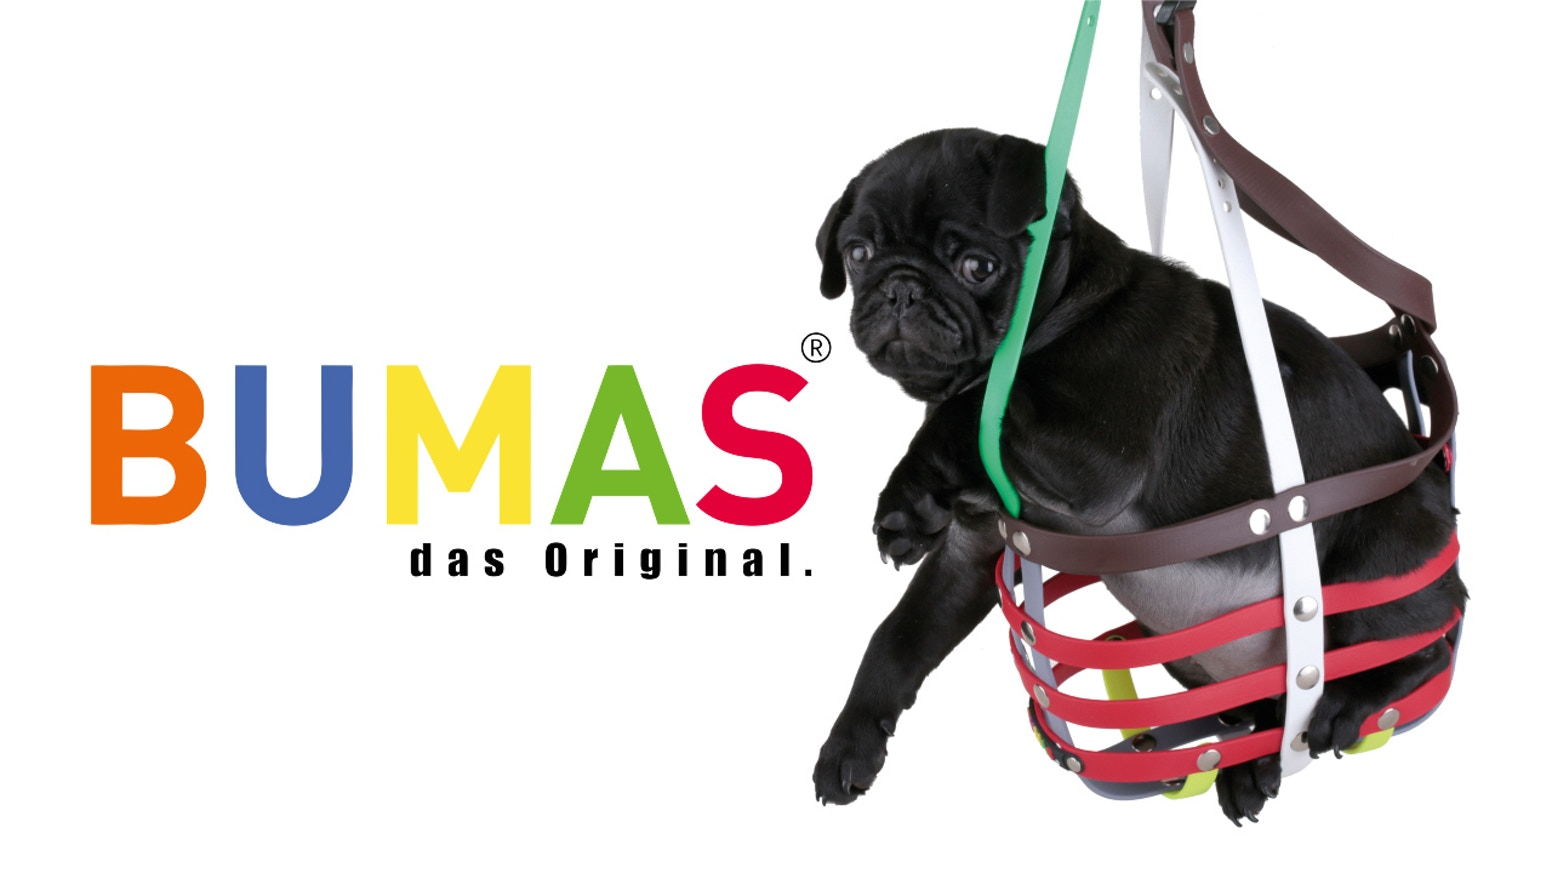 A perfect fitting dog muzzle. Friendly, colorful and unique like your dog. Comfortable and hygienic with an animal welfare certificate. www.bumas.us